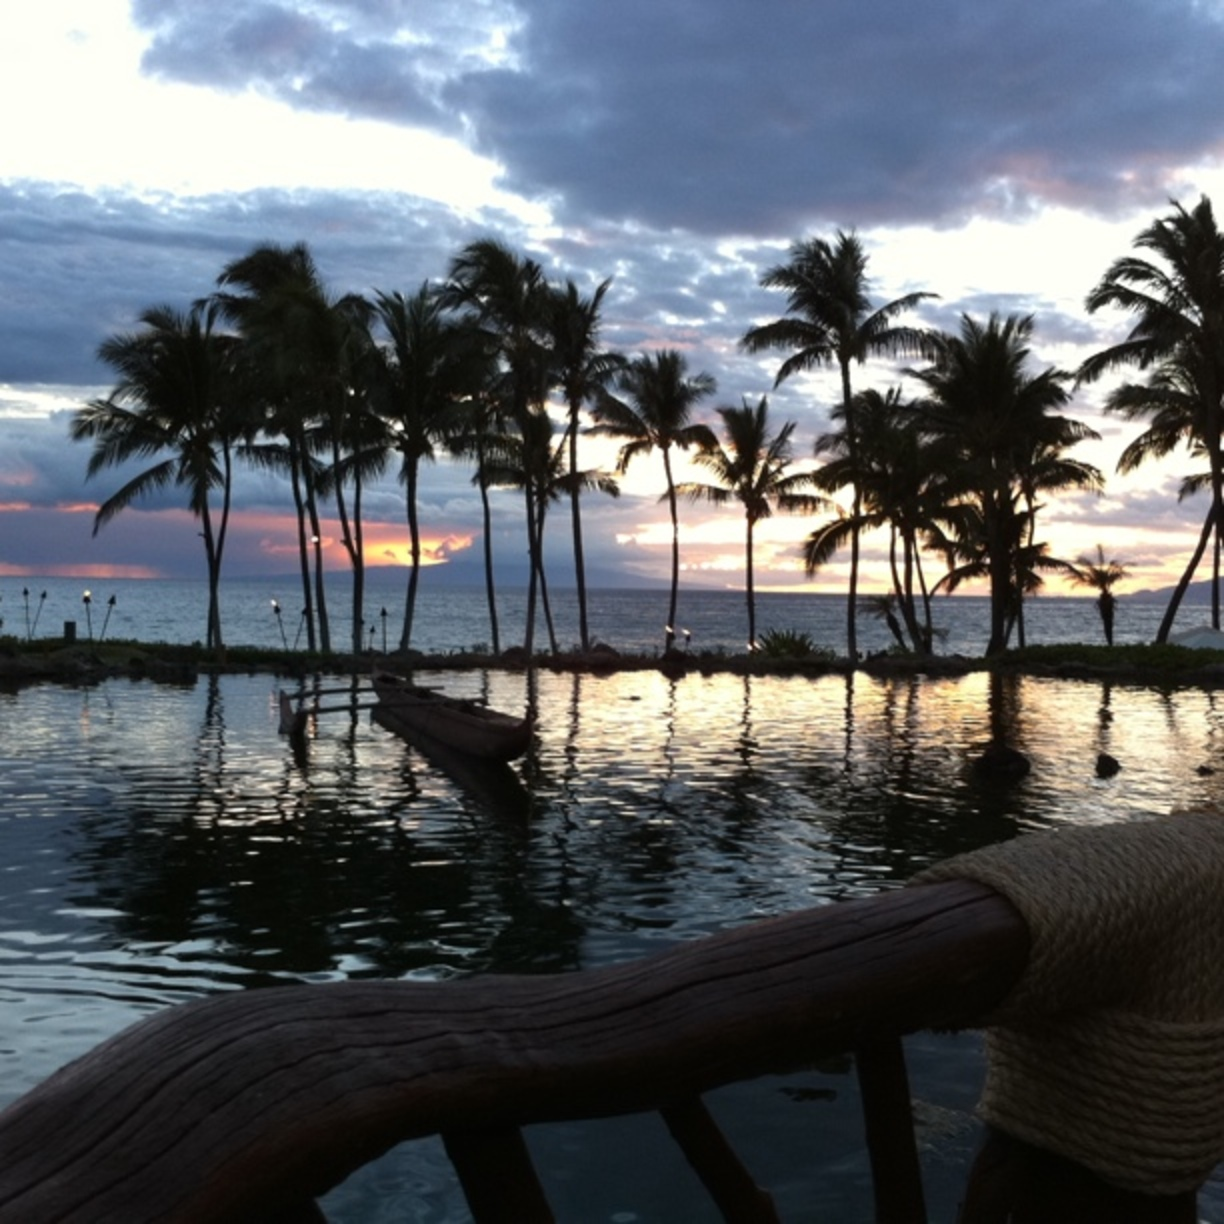 Hipmunk Hotels: Affordable Hotels in Maui